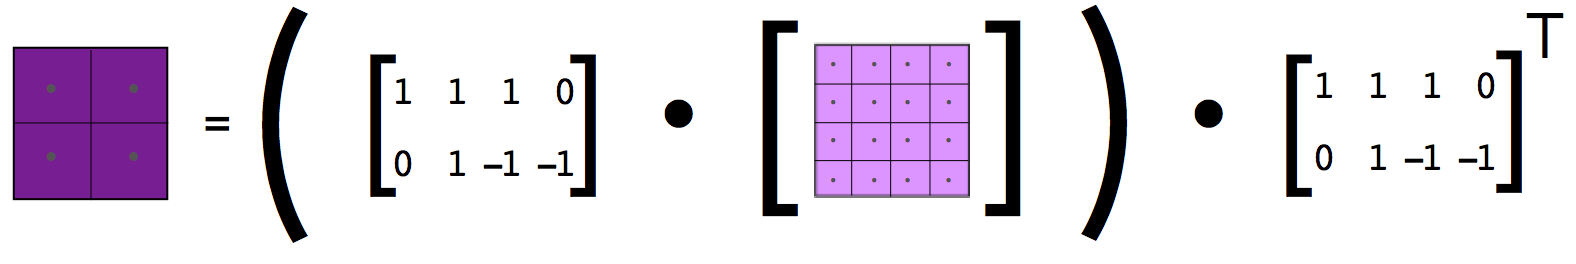 convolutions using dot products